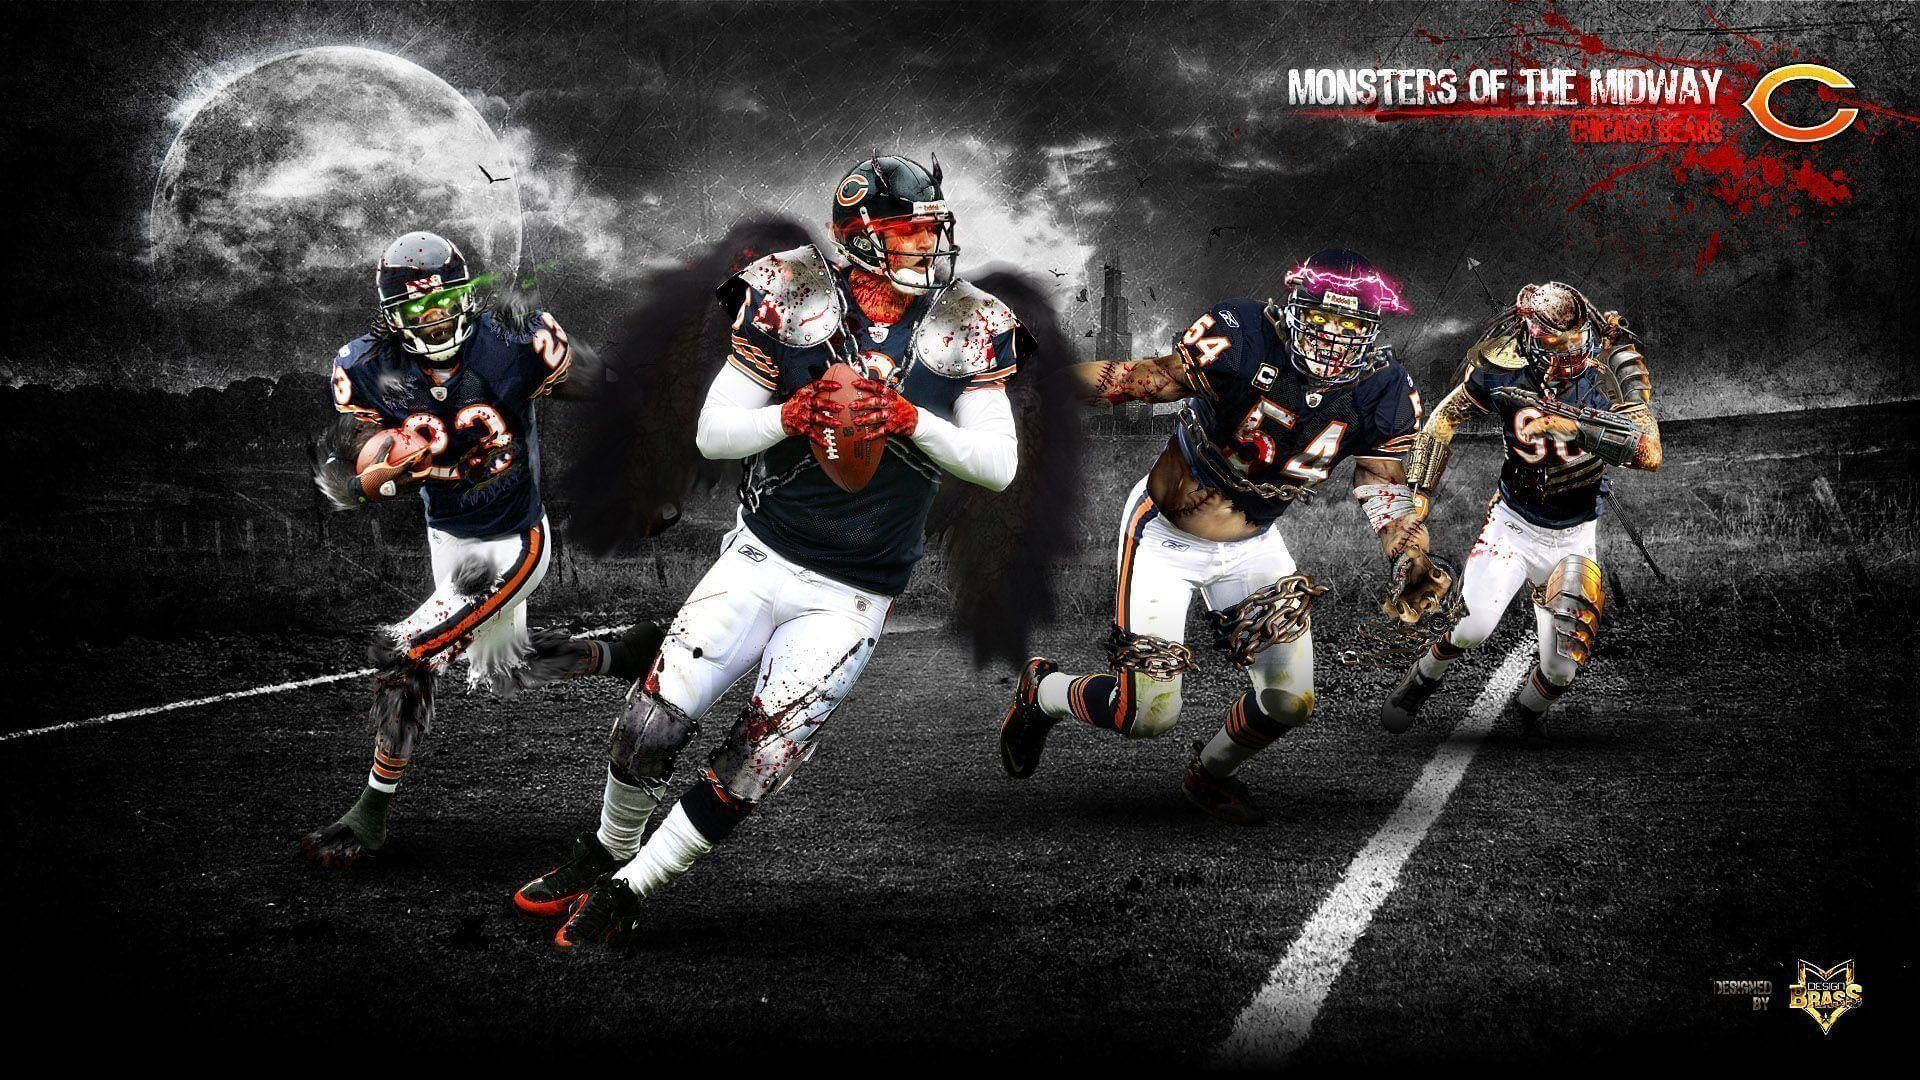 Bears For Pc Wallpaper 2020 Nfl Football Wallpapers 4k In 2020 Nfl Football Wallpaper Football Wallpaper Chicago Bears Wallpaper